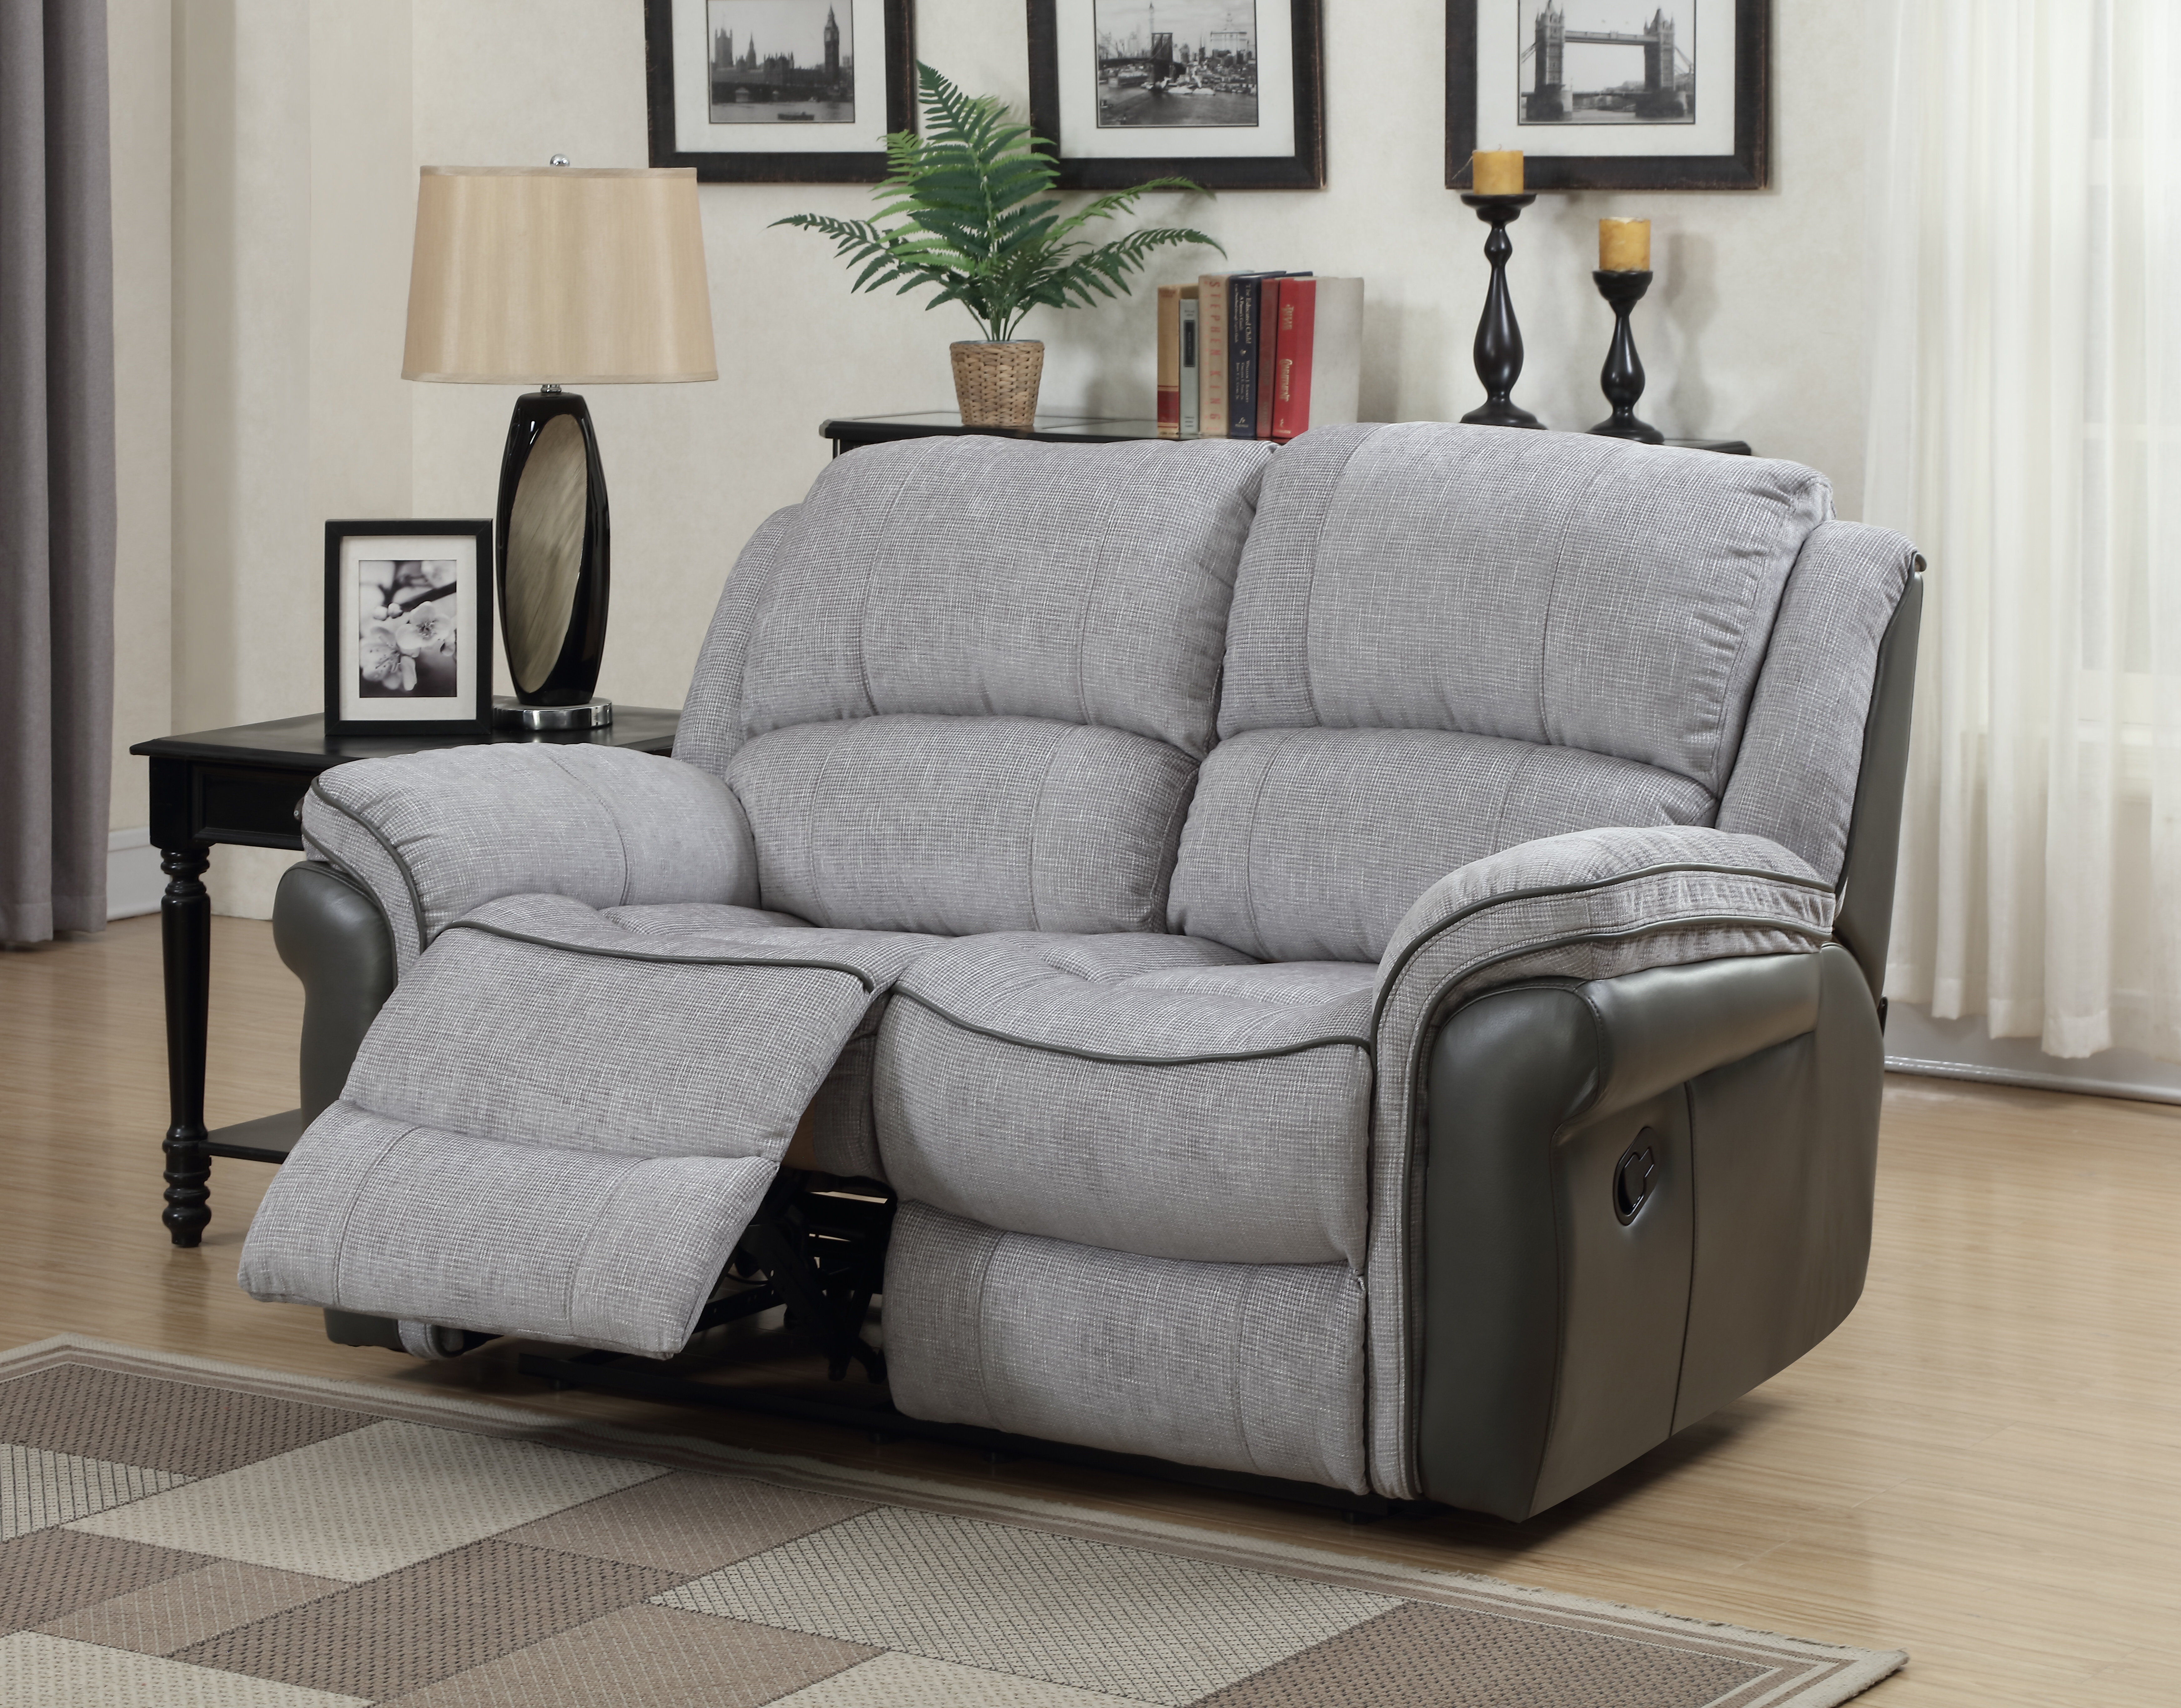 Cowling 2 Seater Reclining Sofa